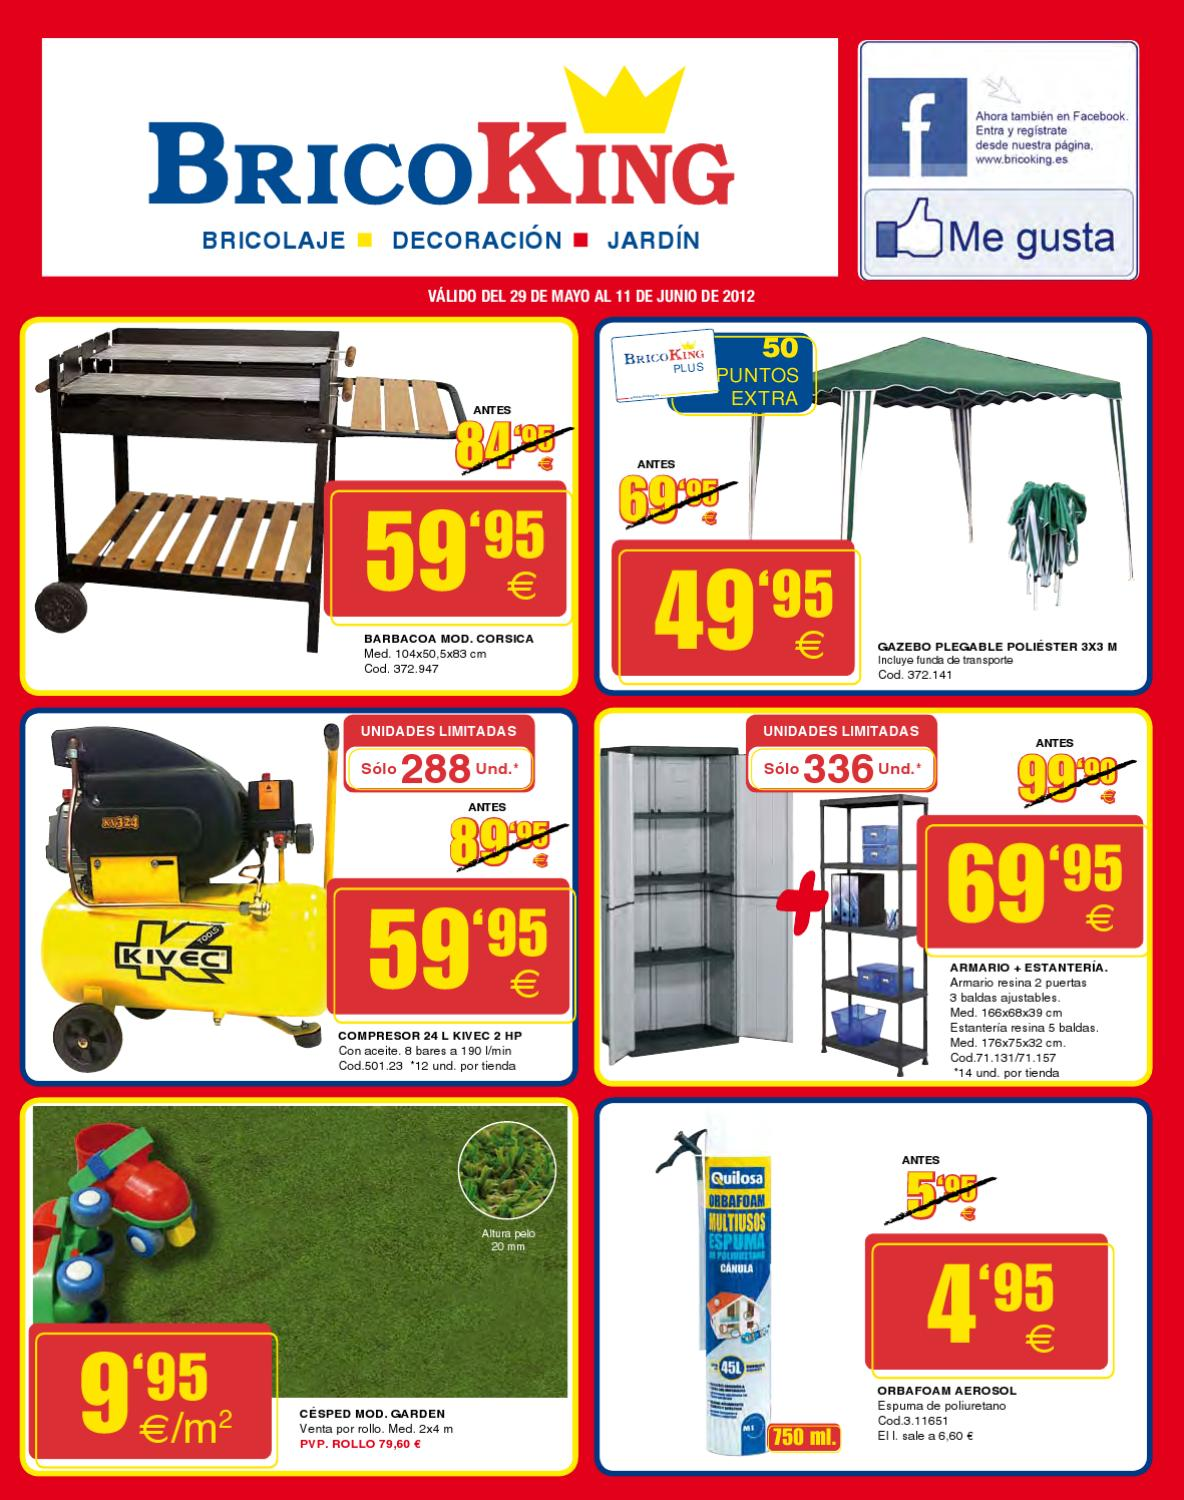 Bricoking junio 2012 barabacoas pergolas y muebles de for Muebles bricoking